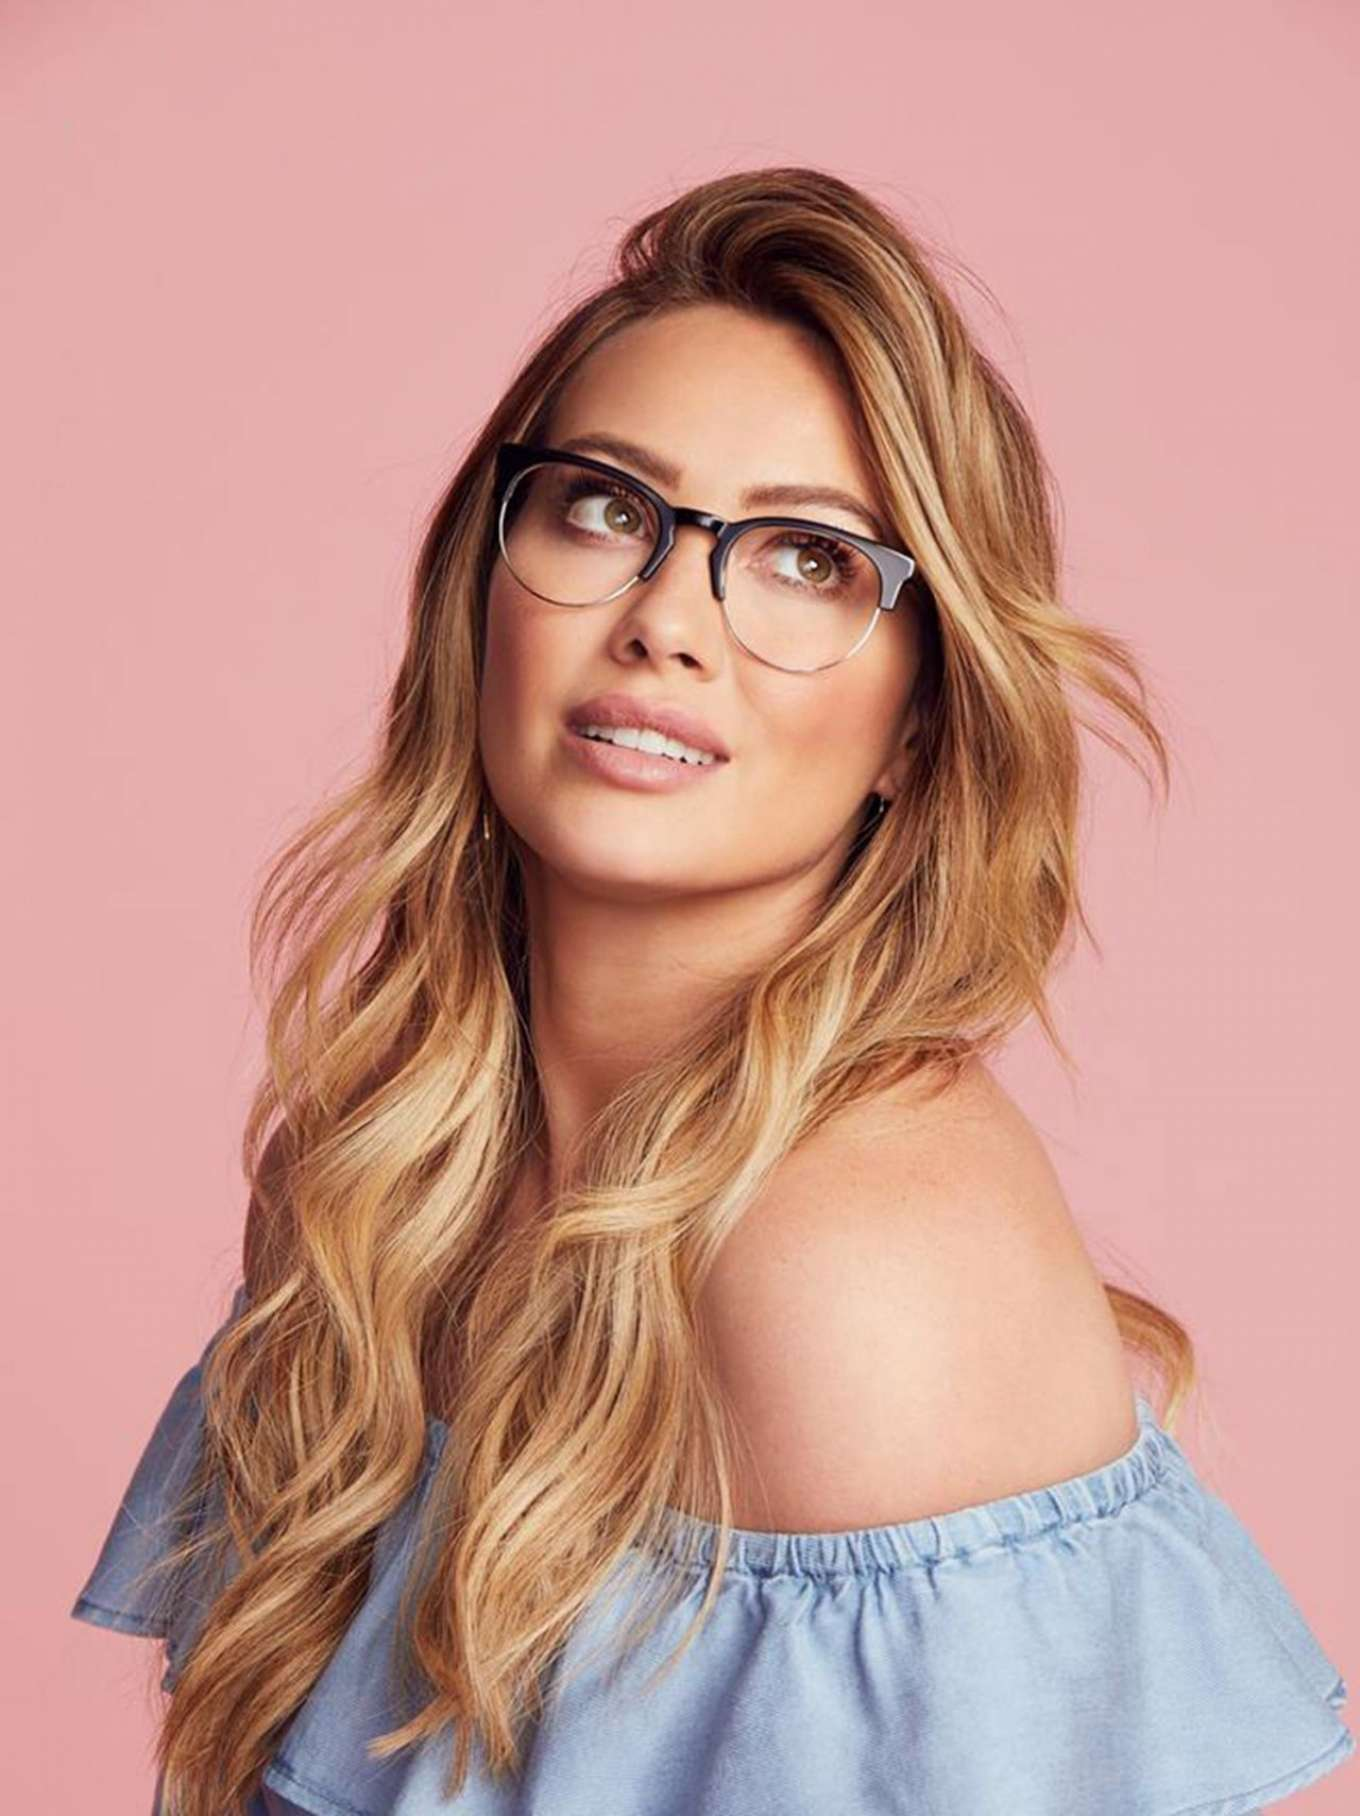 Hilary Duff 2018 : Hilary Duff: Hilary Duff Collection With GlassesUSA com 2018 -09